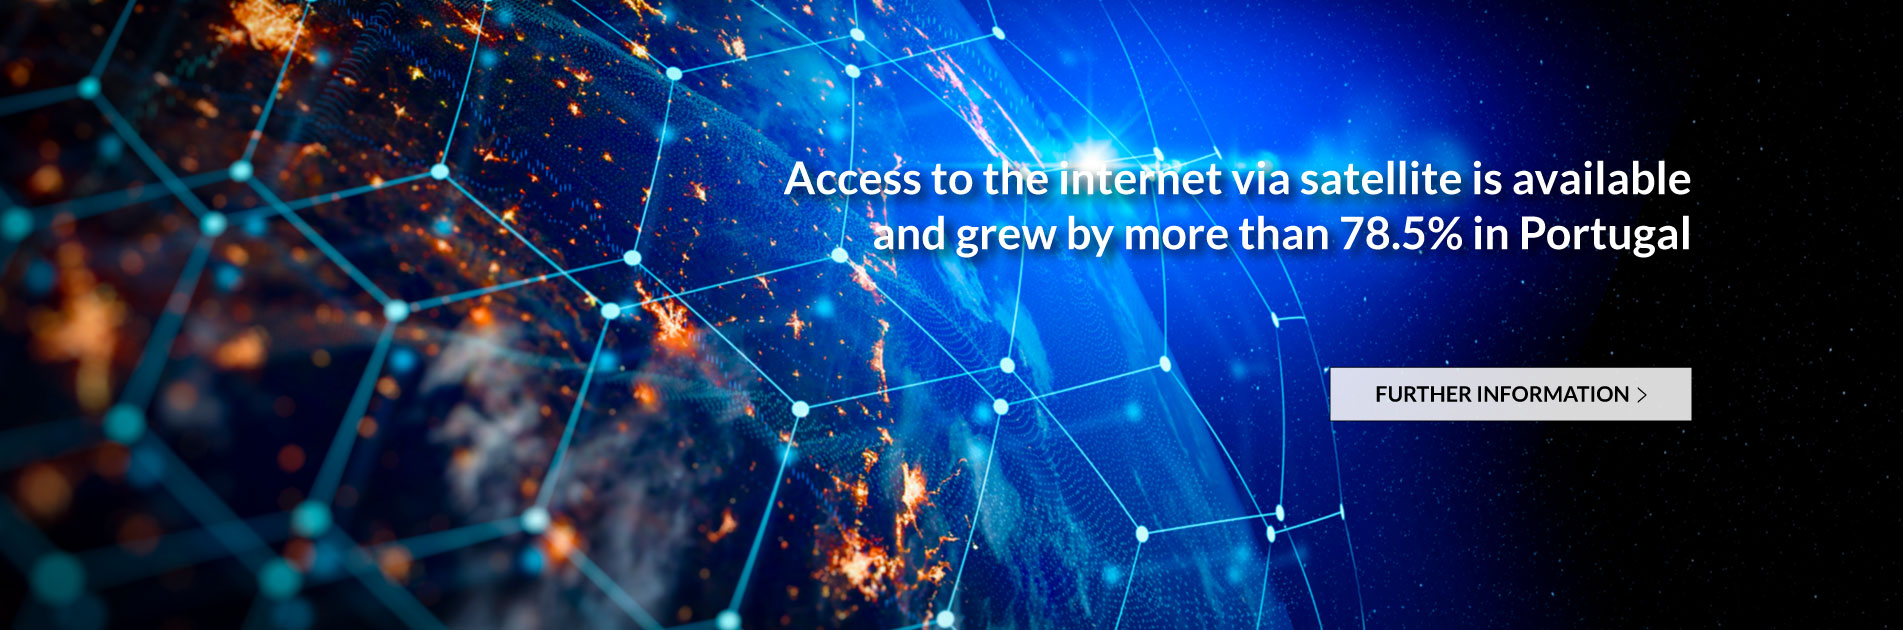 Access to the internet via satellite is available and grew by more than 78.5% in Portugal